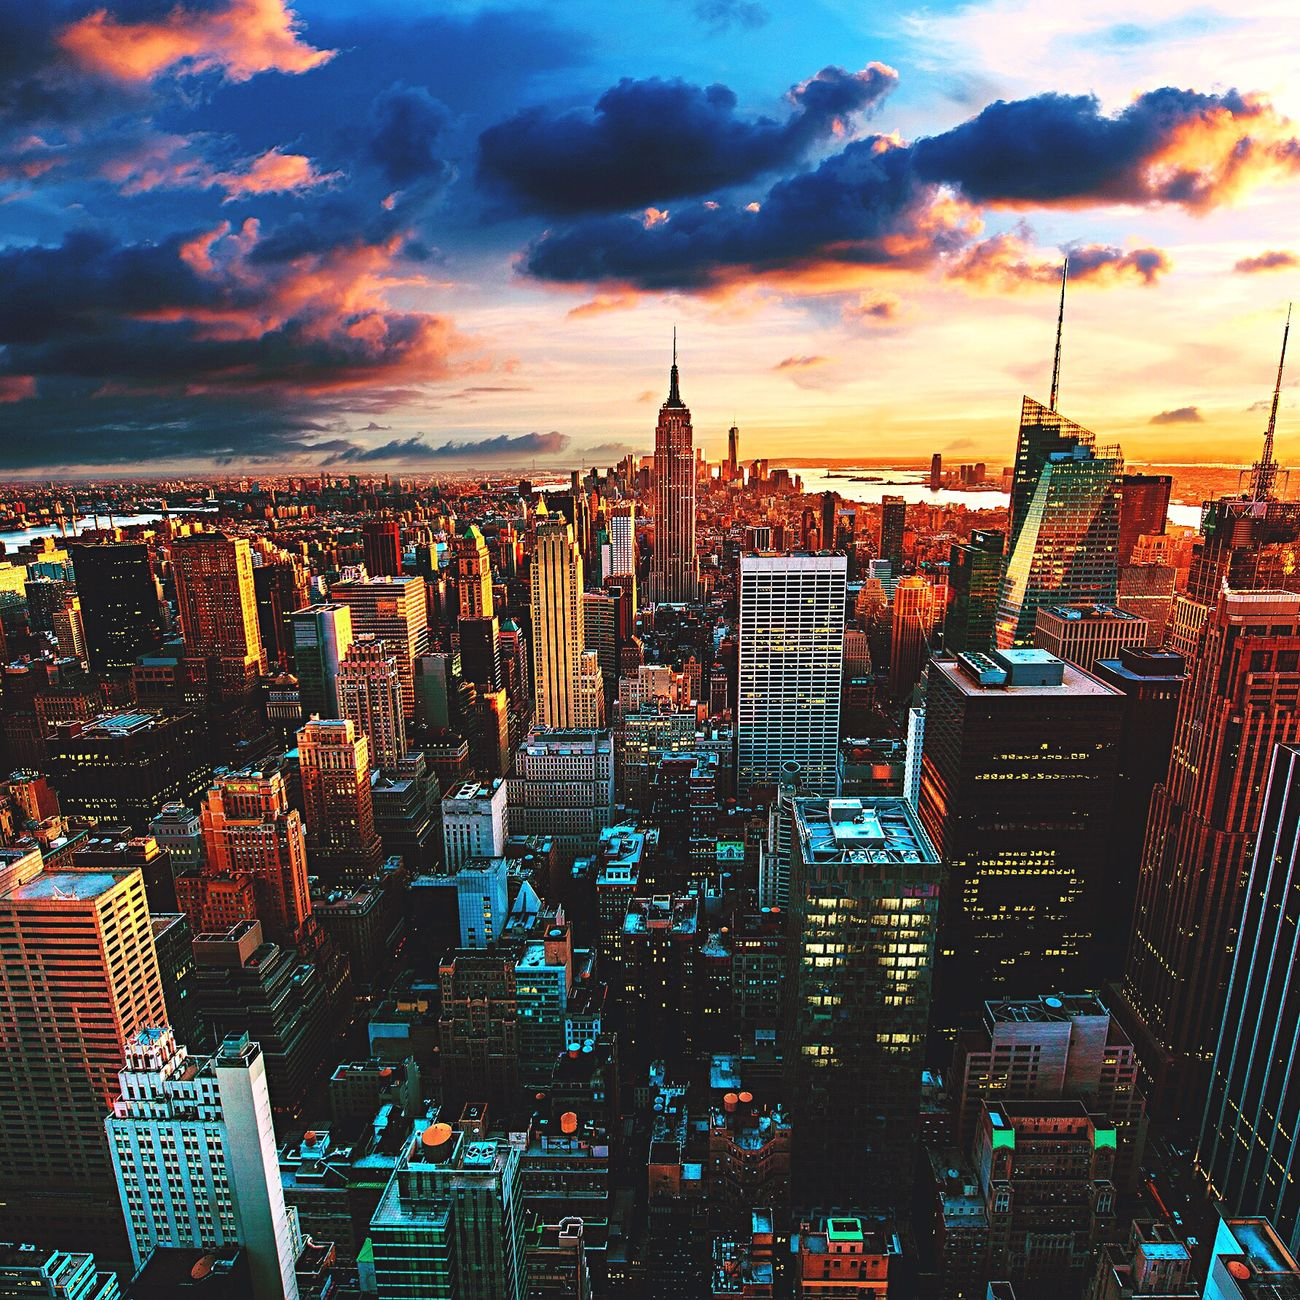 Top Of The Rock Rockefeller Center New York City Moments World Travel Vacation Oldphoto Summer Sky Colors Incredible Manhattan On Fire USA